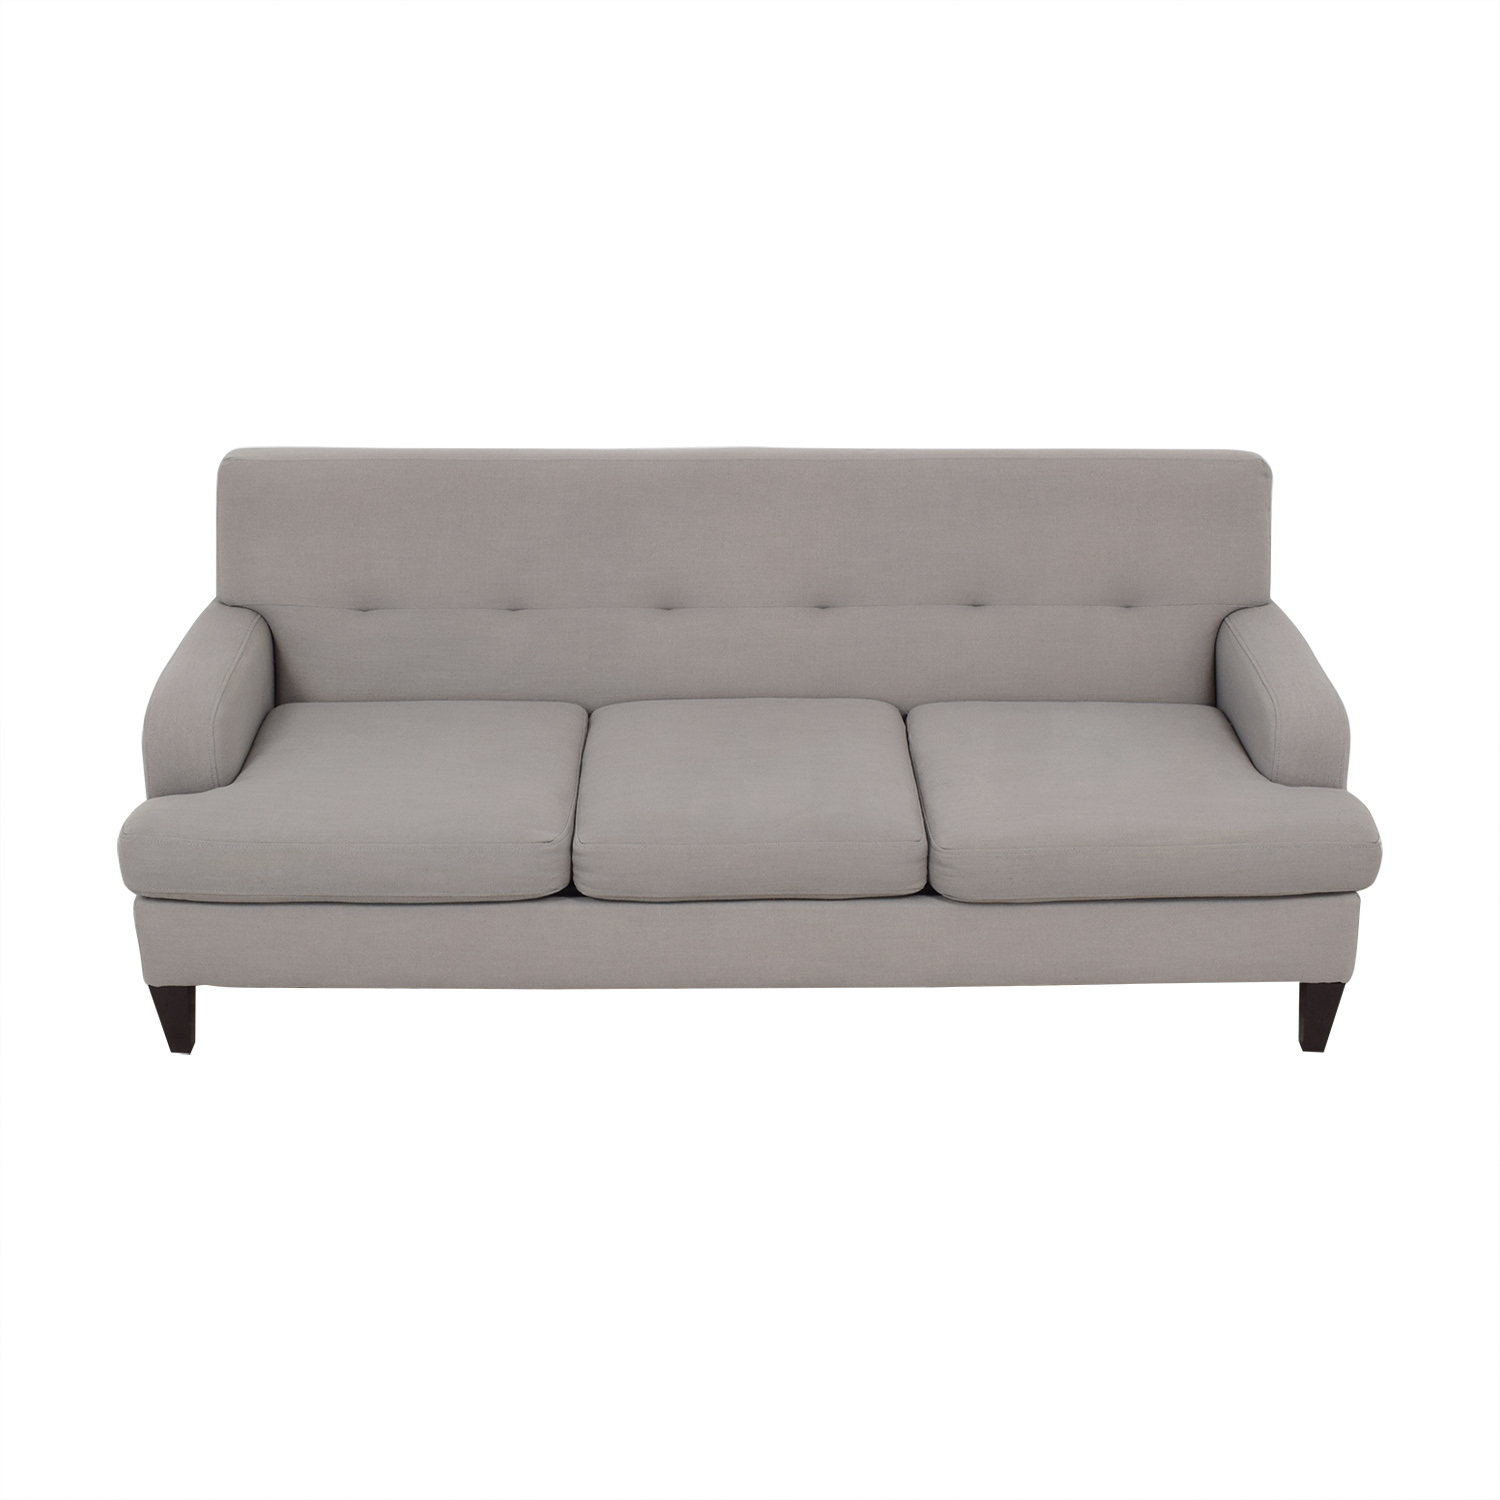 Macy's Macy's Jillian Sofa ct